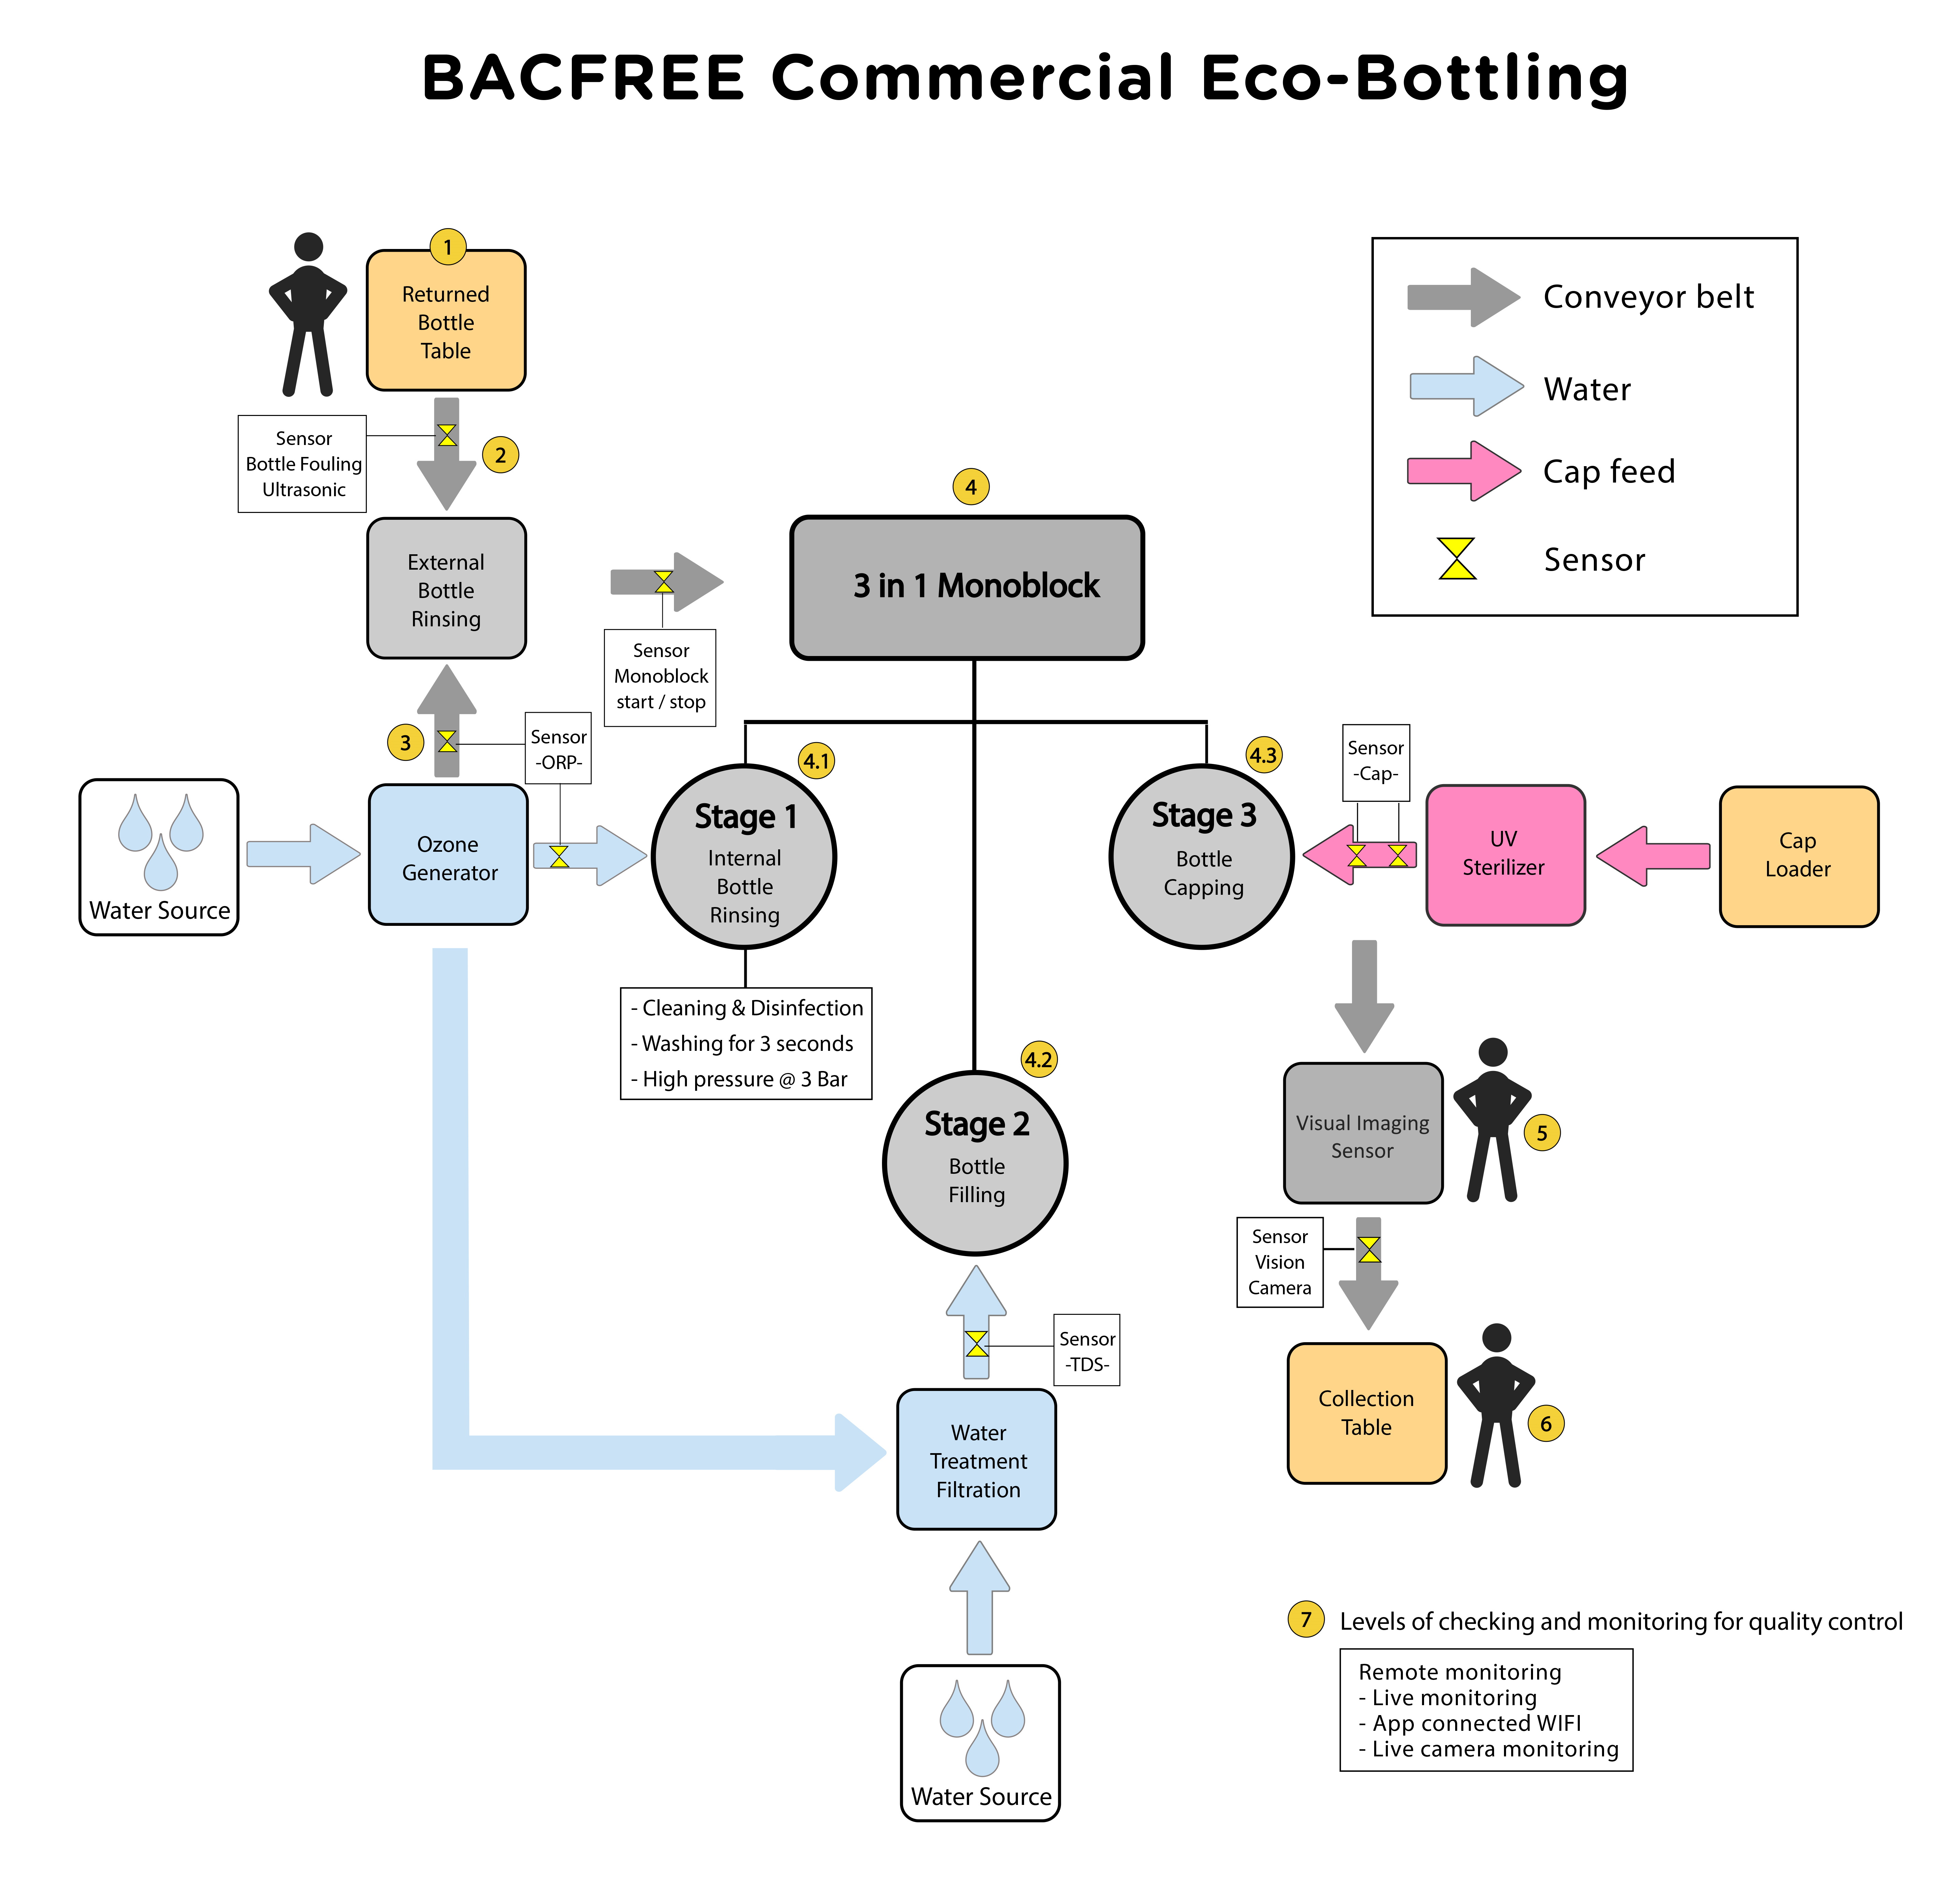 Bacfree Eco Bottling Business Suite